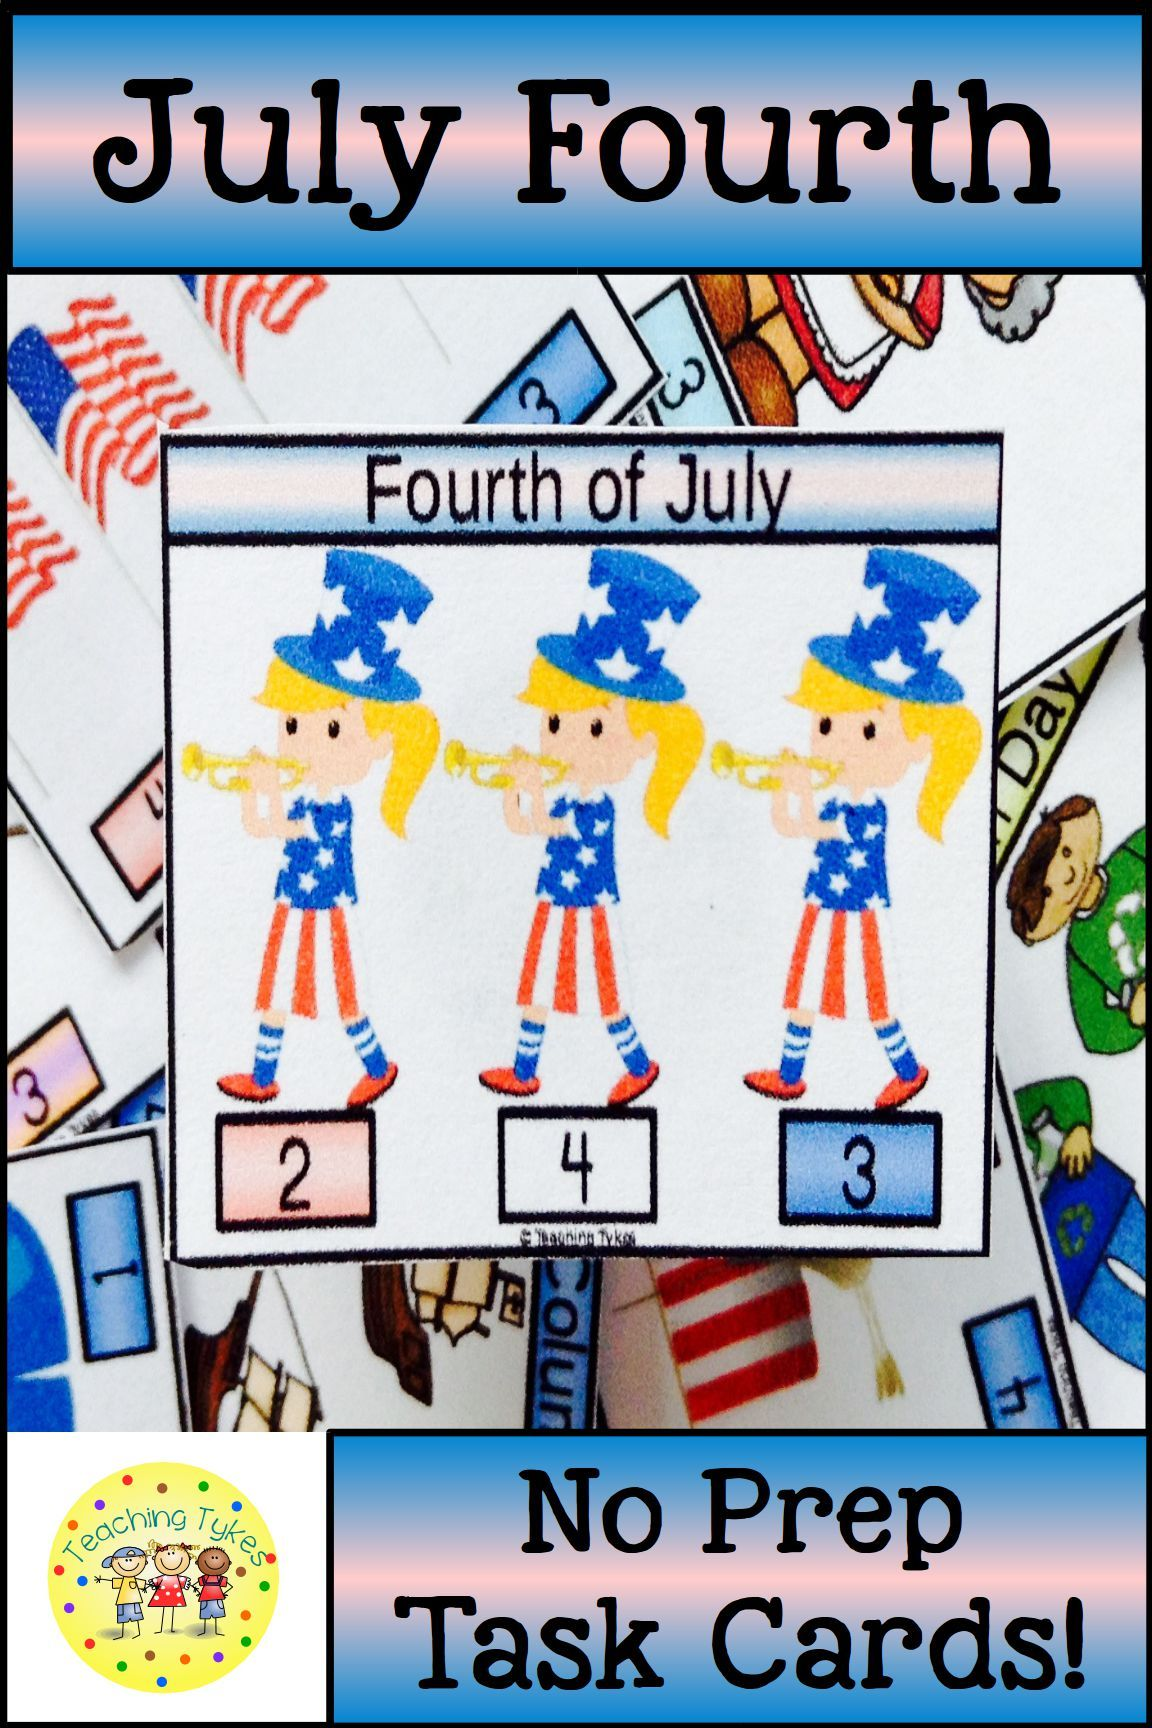 July Fourth Activity To Practice Counting Julyfourth